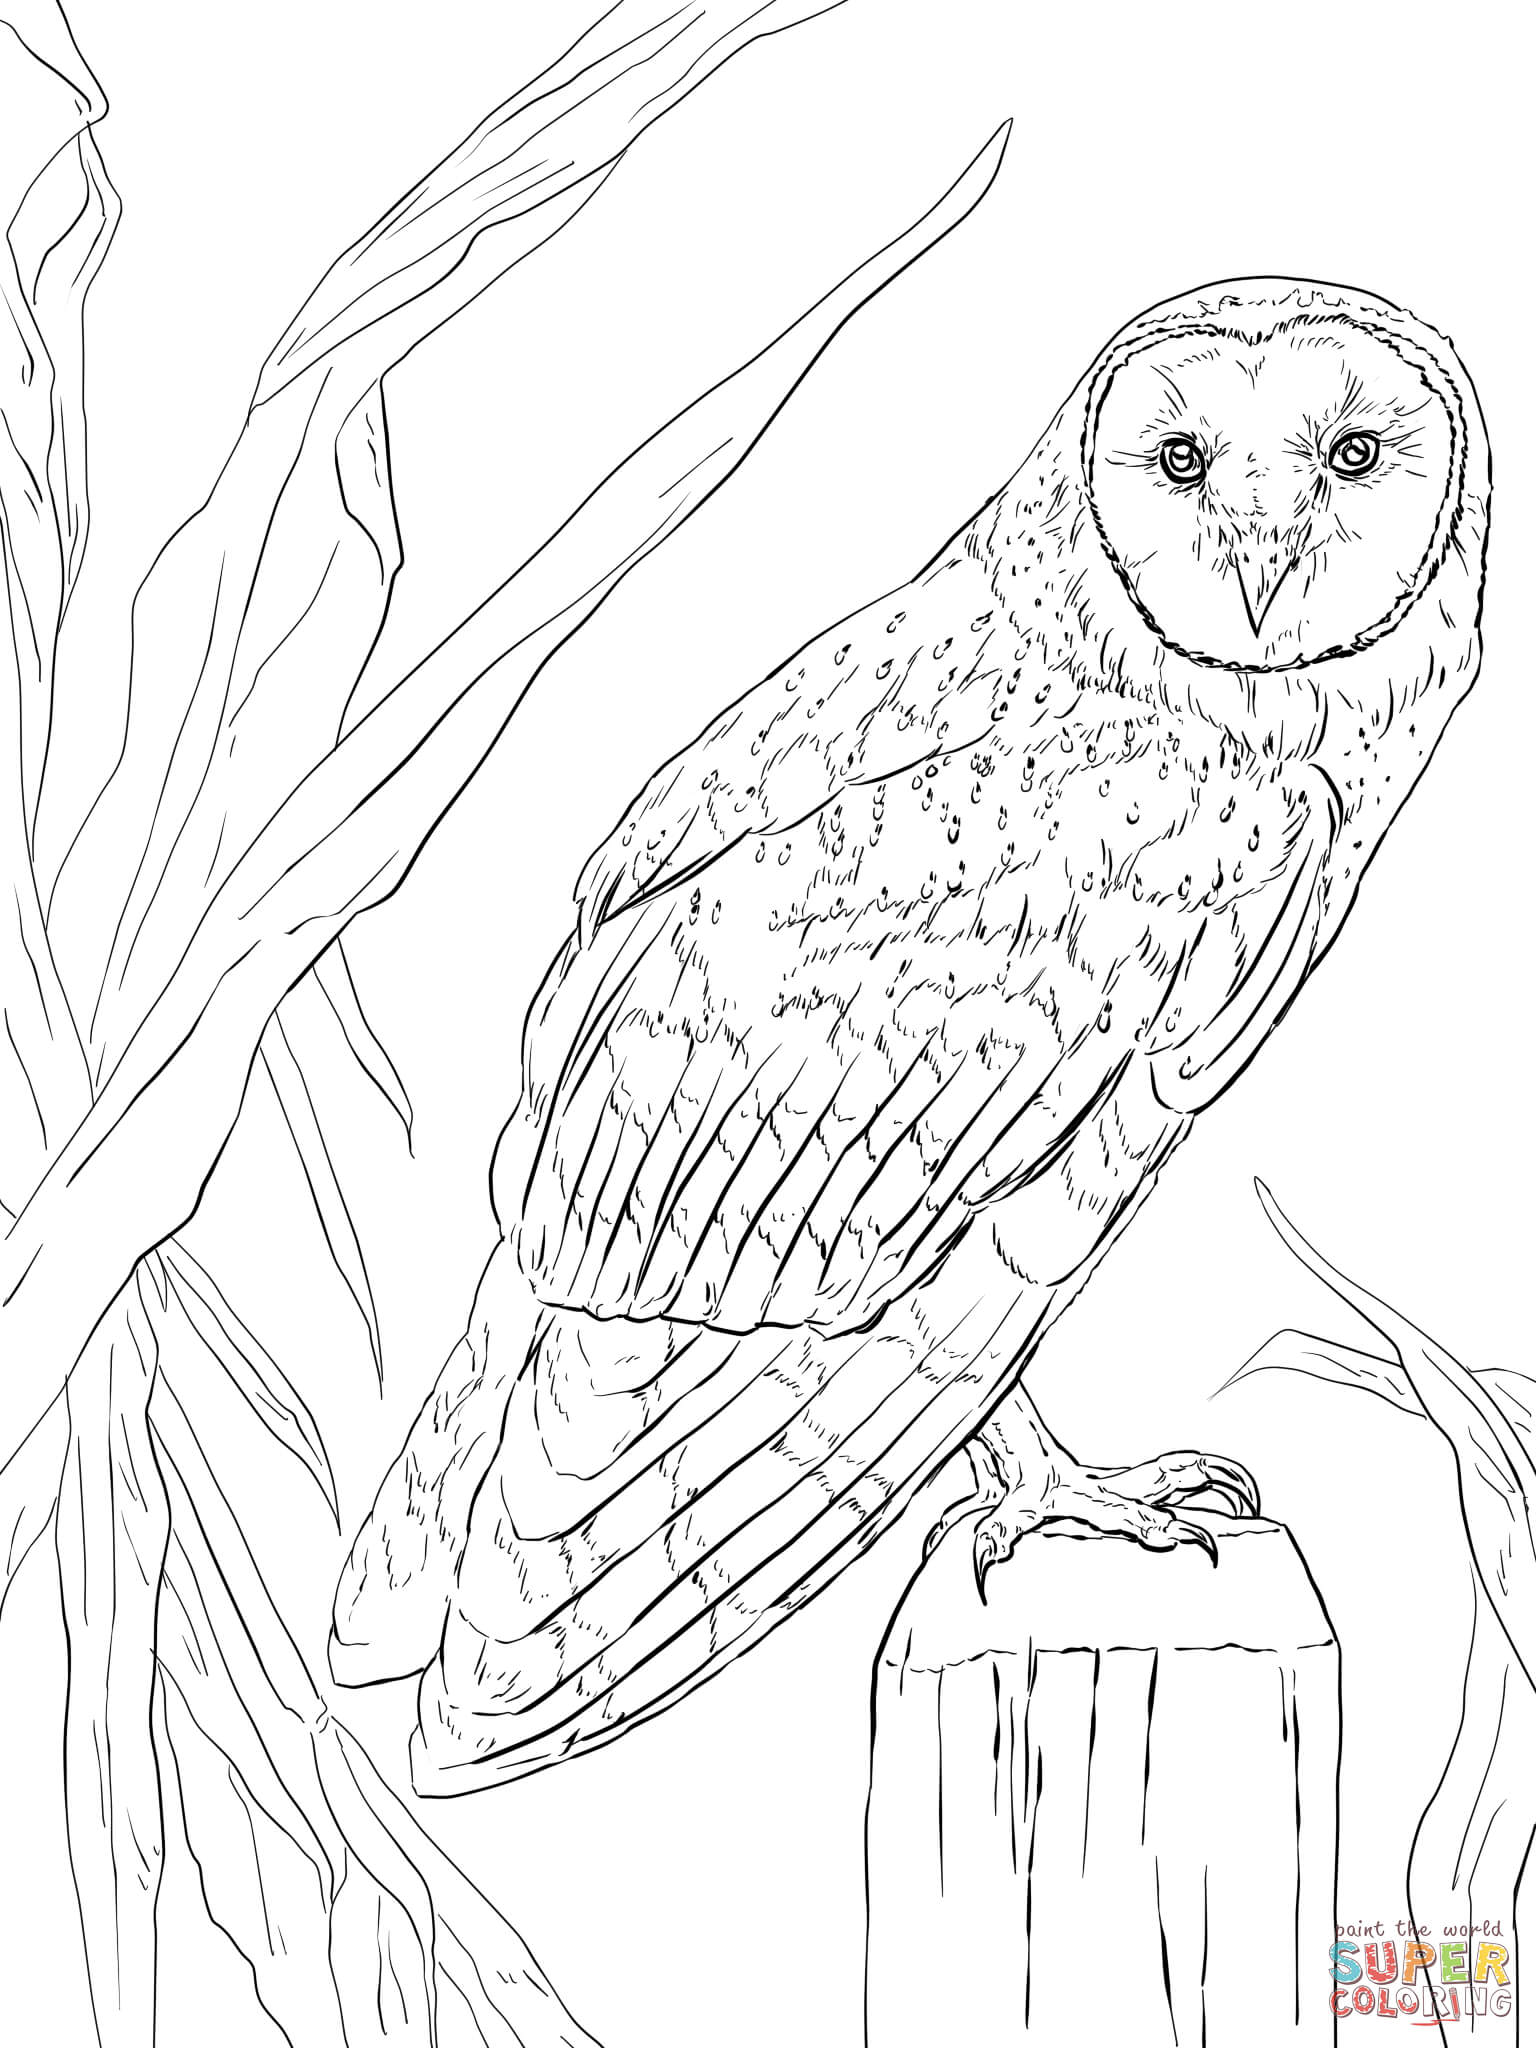 nocturnal animals coloring sheets free pictures of nocturnal animals download free clip art coloring sheets nocturnal animals